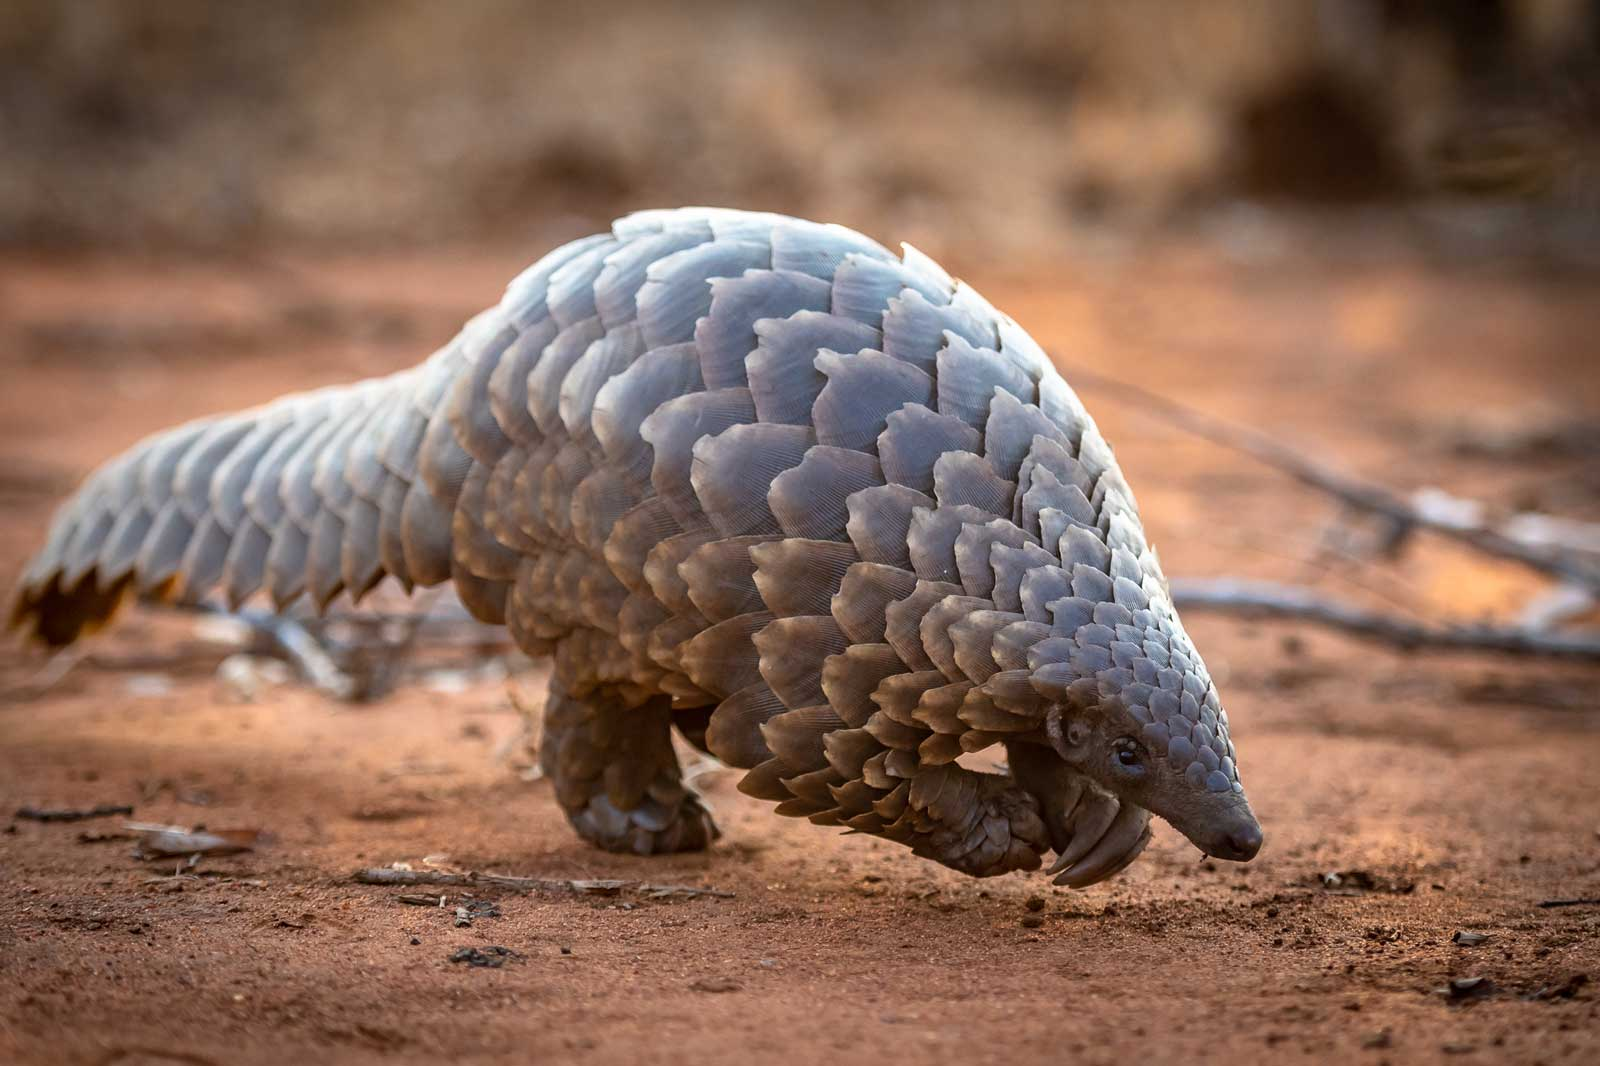 Collection of Photos of Pangolin Sightings in the Greater Kruger